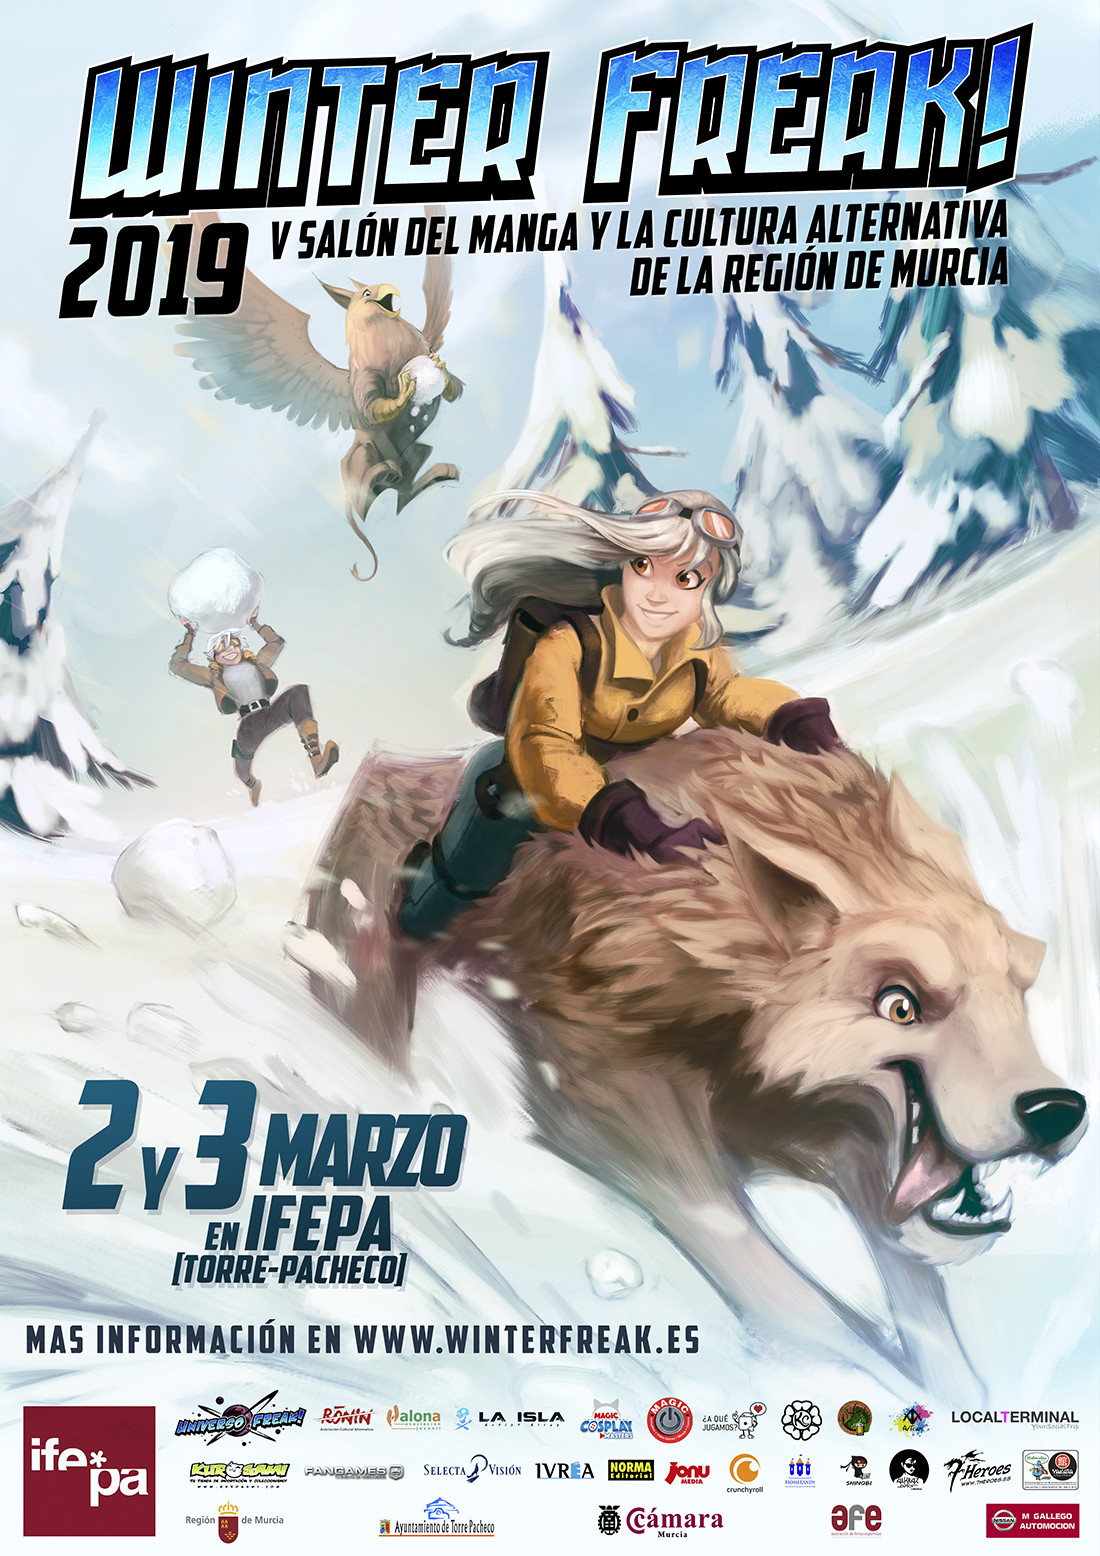 Winter Freak 2019 Murcia